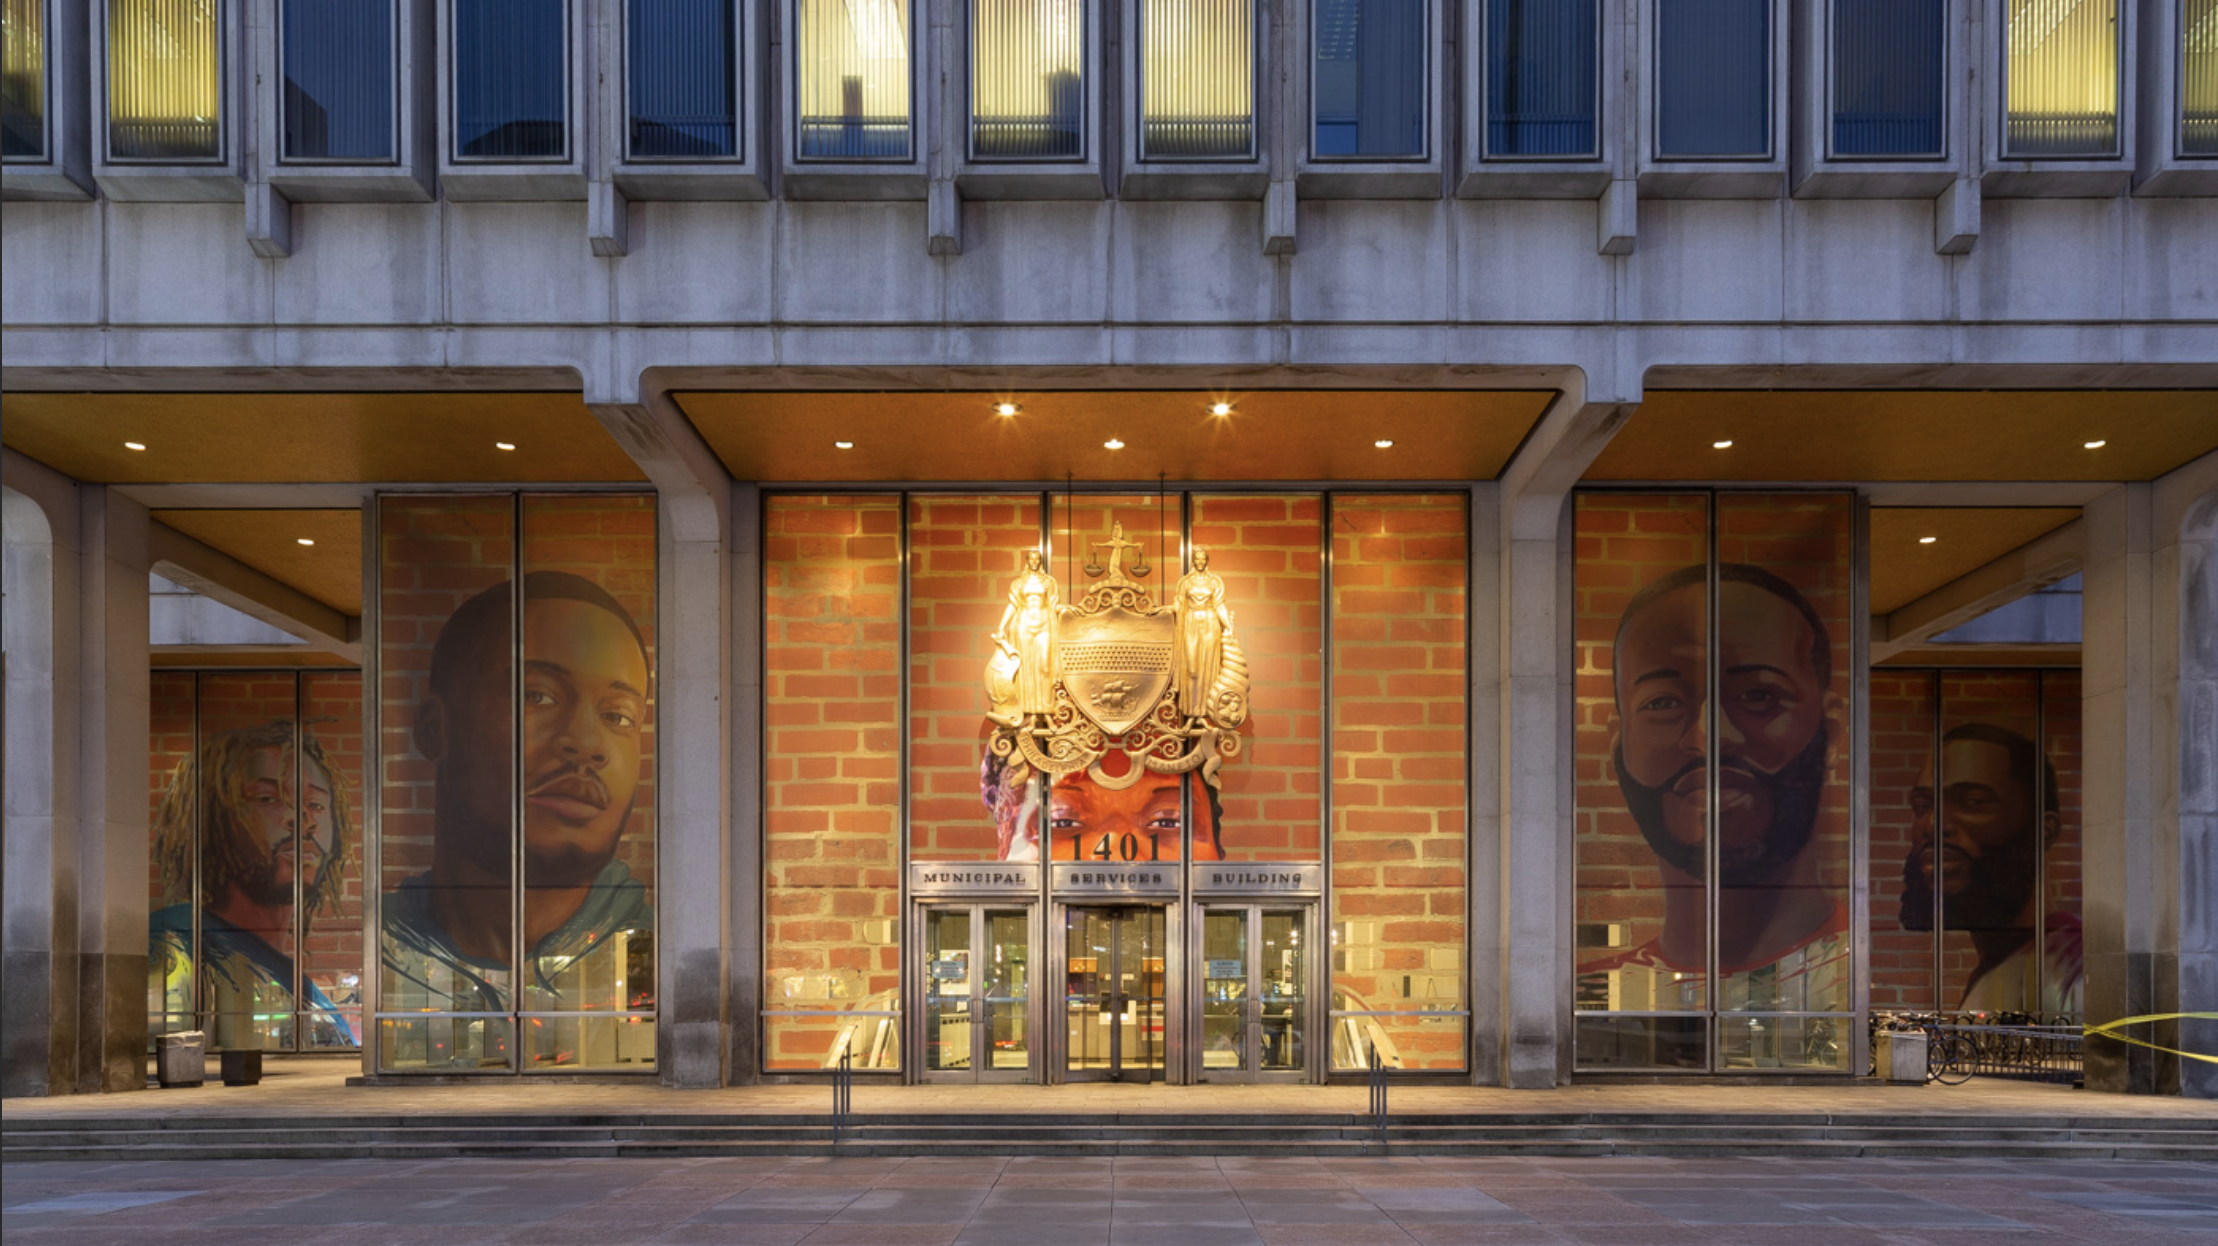 Russell Craig and Jesse Krimes,  Portraits of Justice  Installation View, Philadelphia Municipal Services Building, 2018. Photo copyright Steve Weinik.